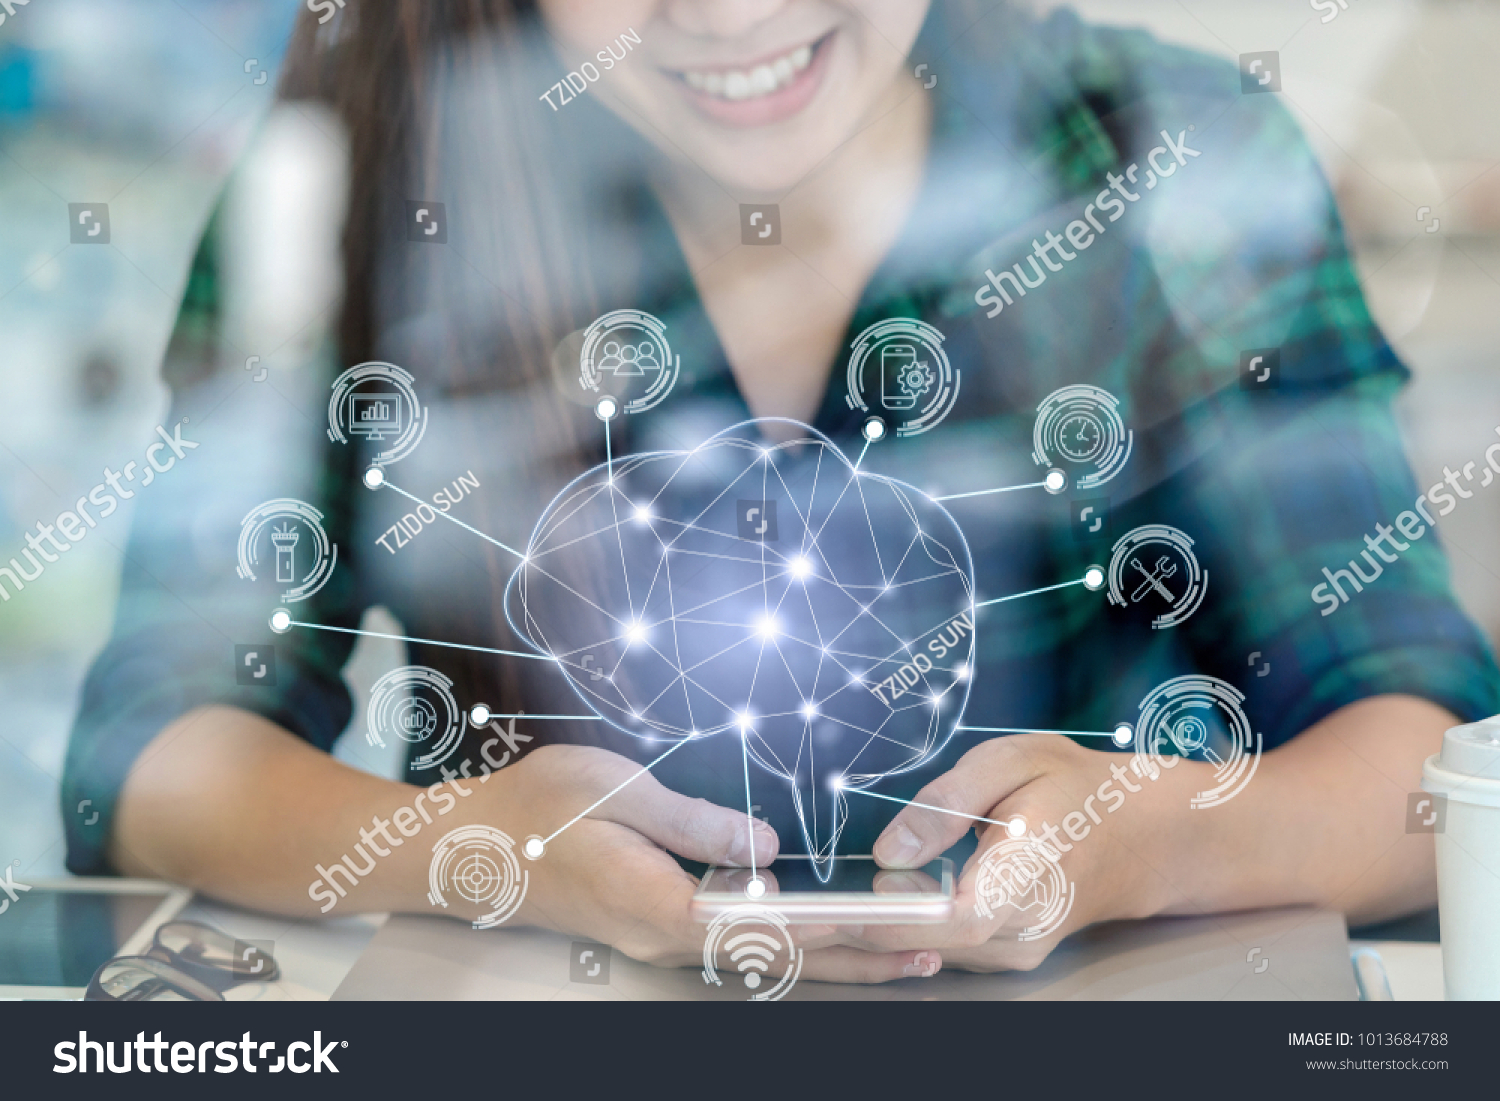 Polygonal brain shape of an artificial intelligence with various icon of smart city Internet of Things Technology over Asian businesswoman hand using the smart mobile phone,AI and business IOT concept #1013684788